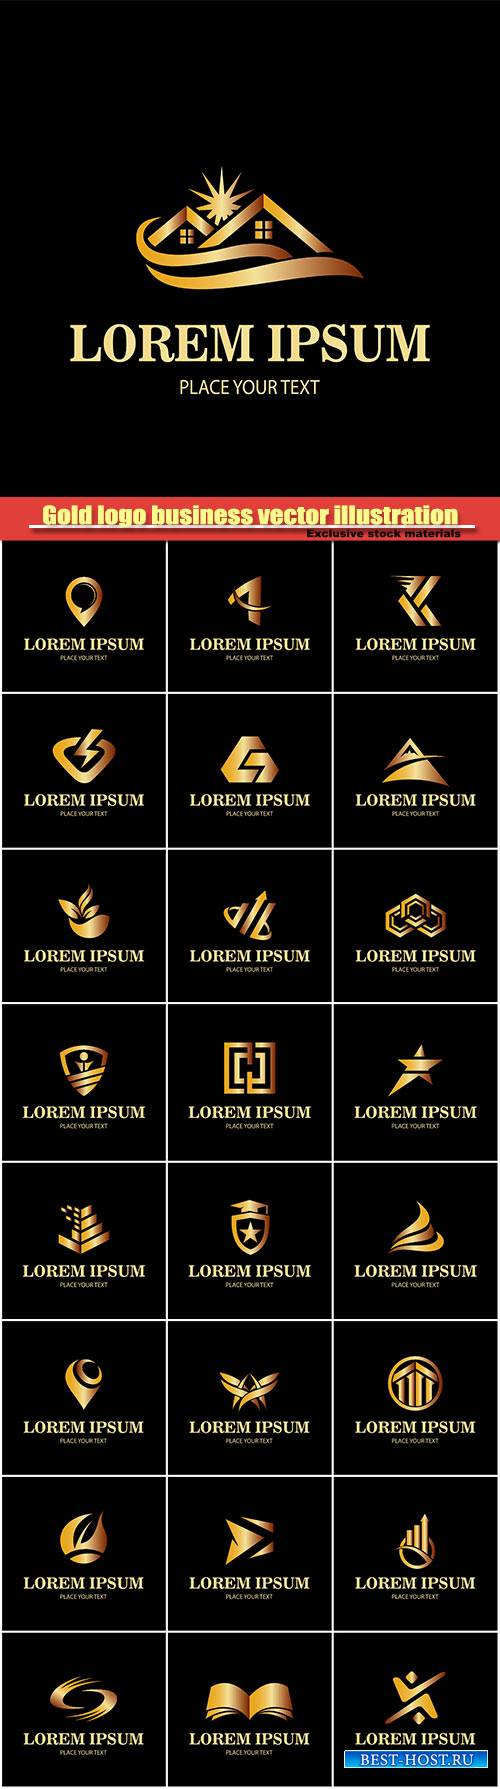 Gold logo business vector illustration #7